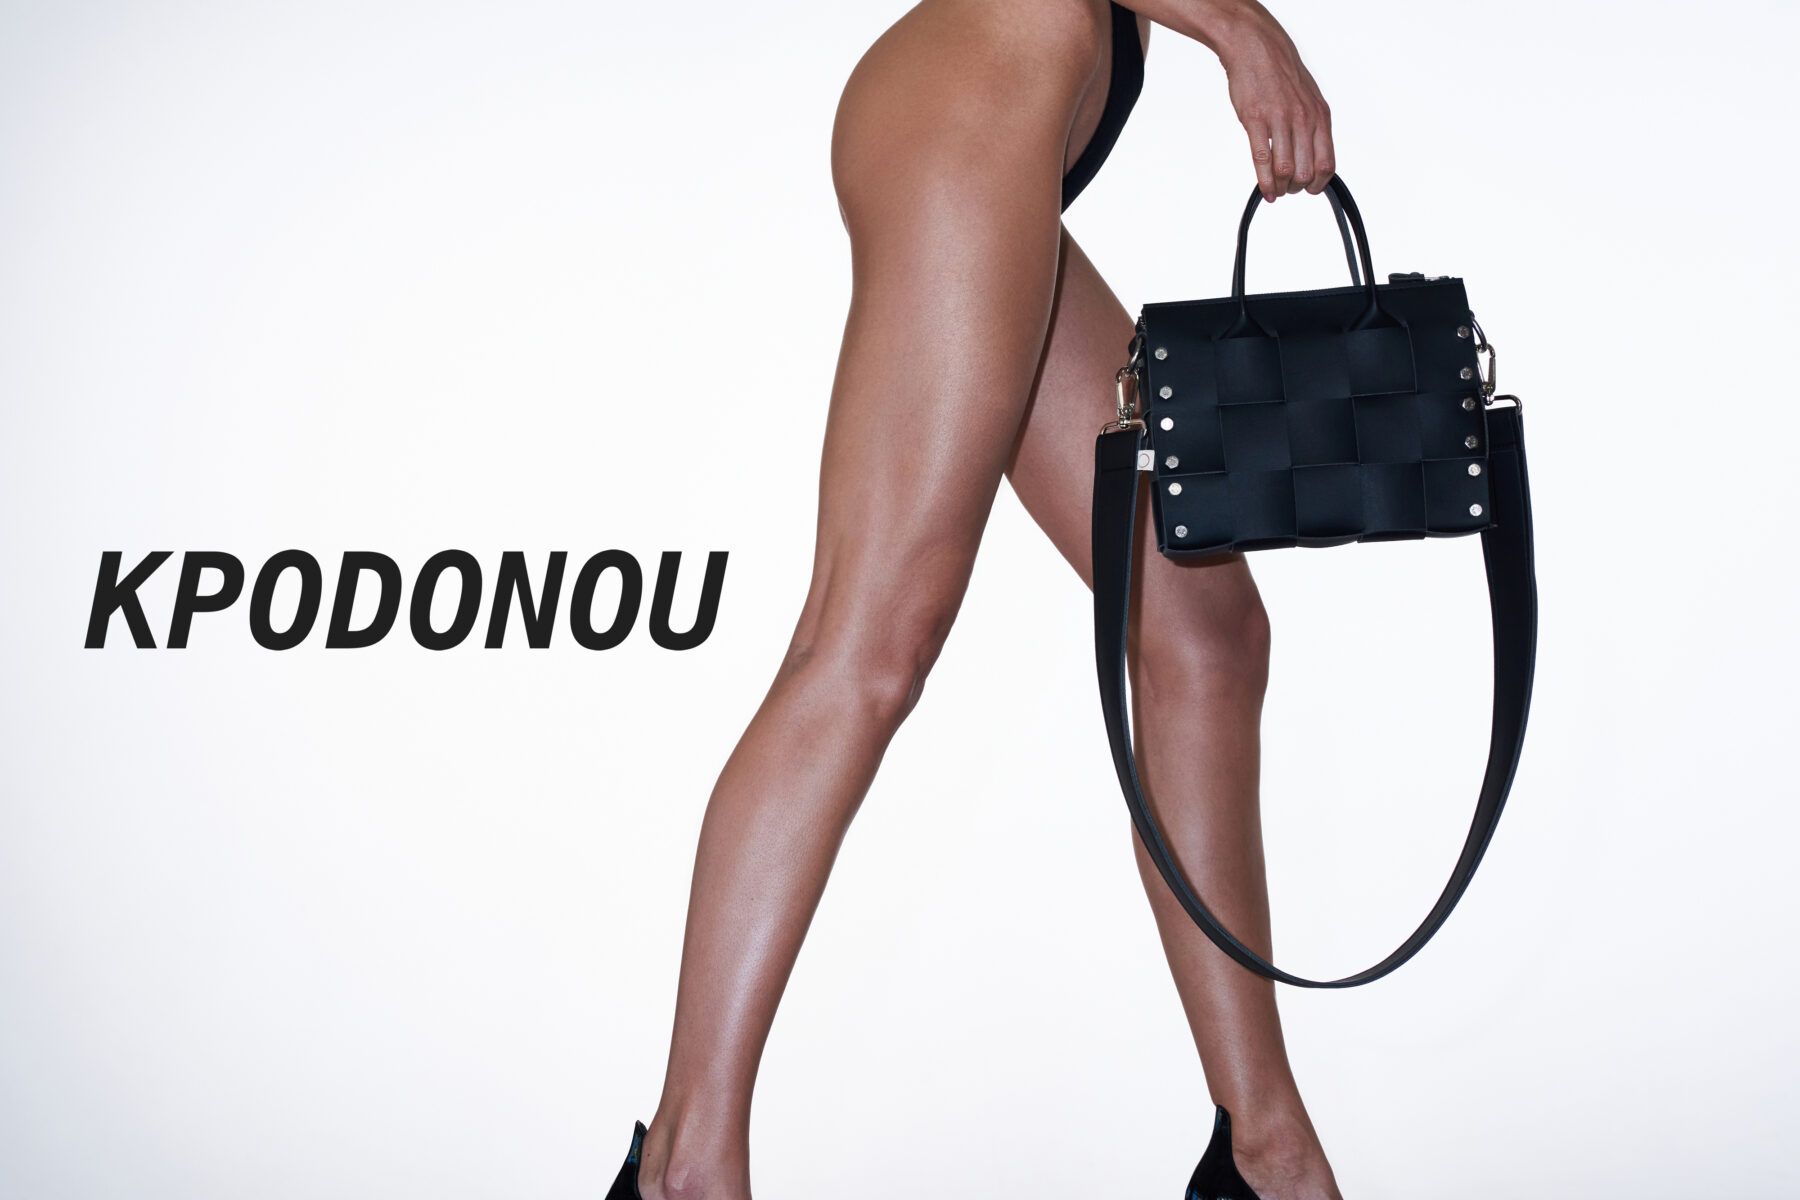 Commercial for Kpodonou photographed by Lola Banet